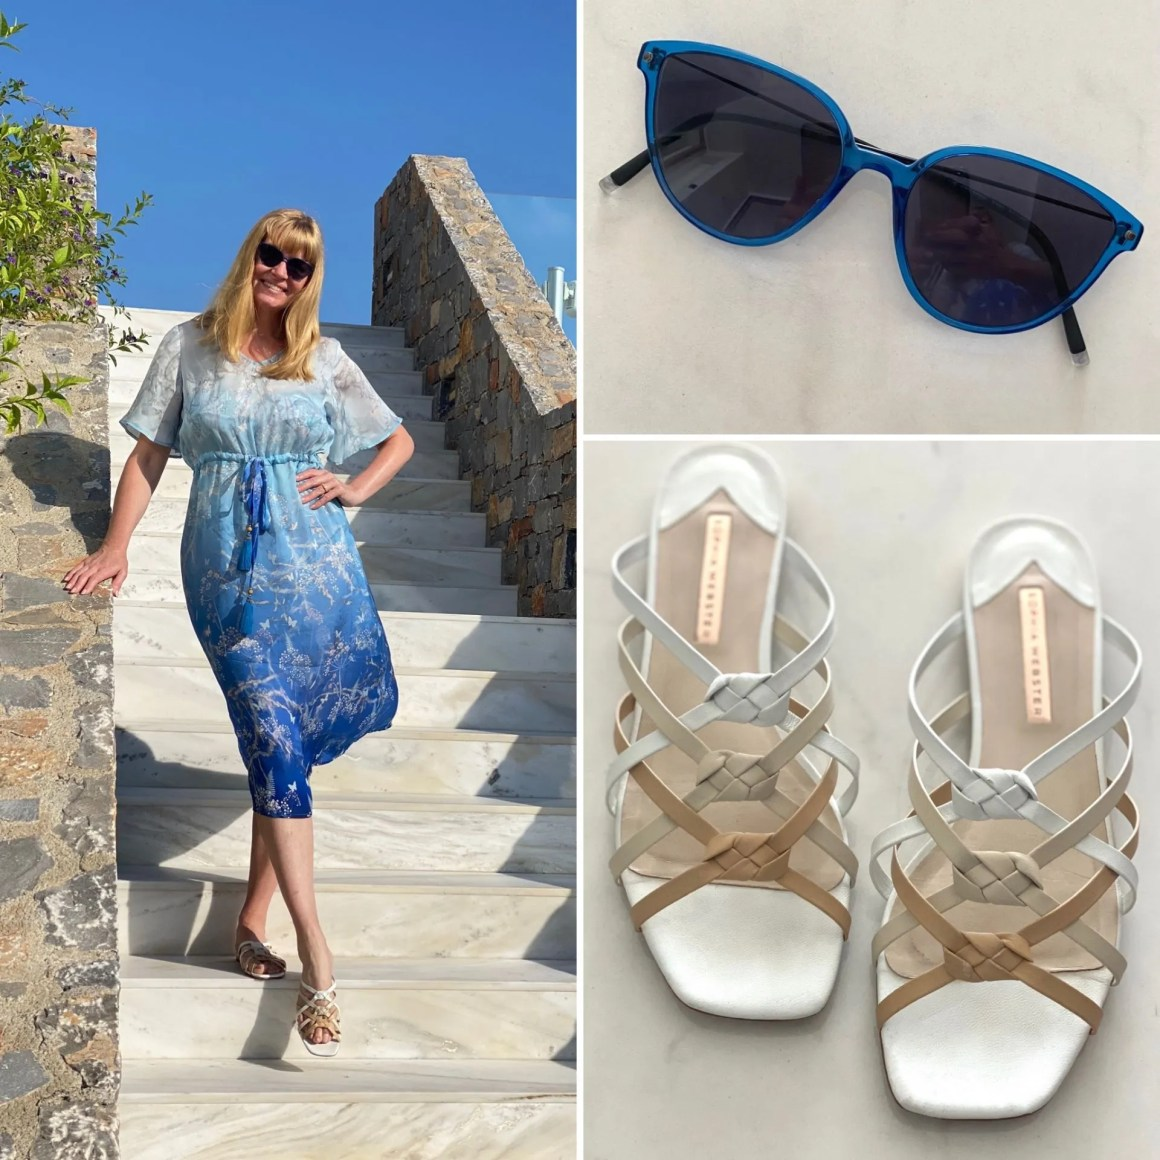 daytime honeymoon outfit for crete in August